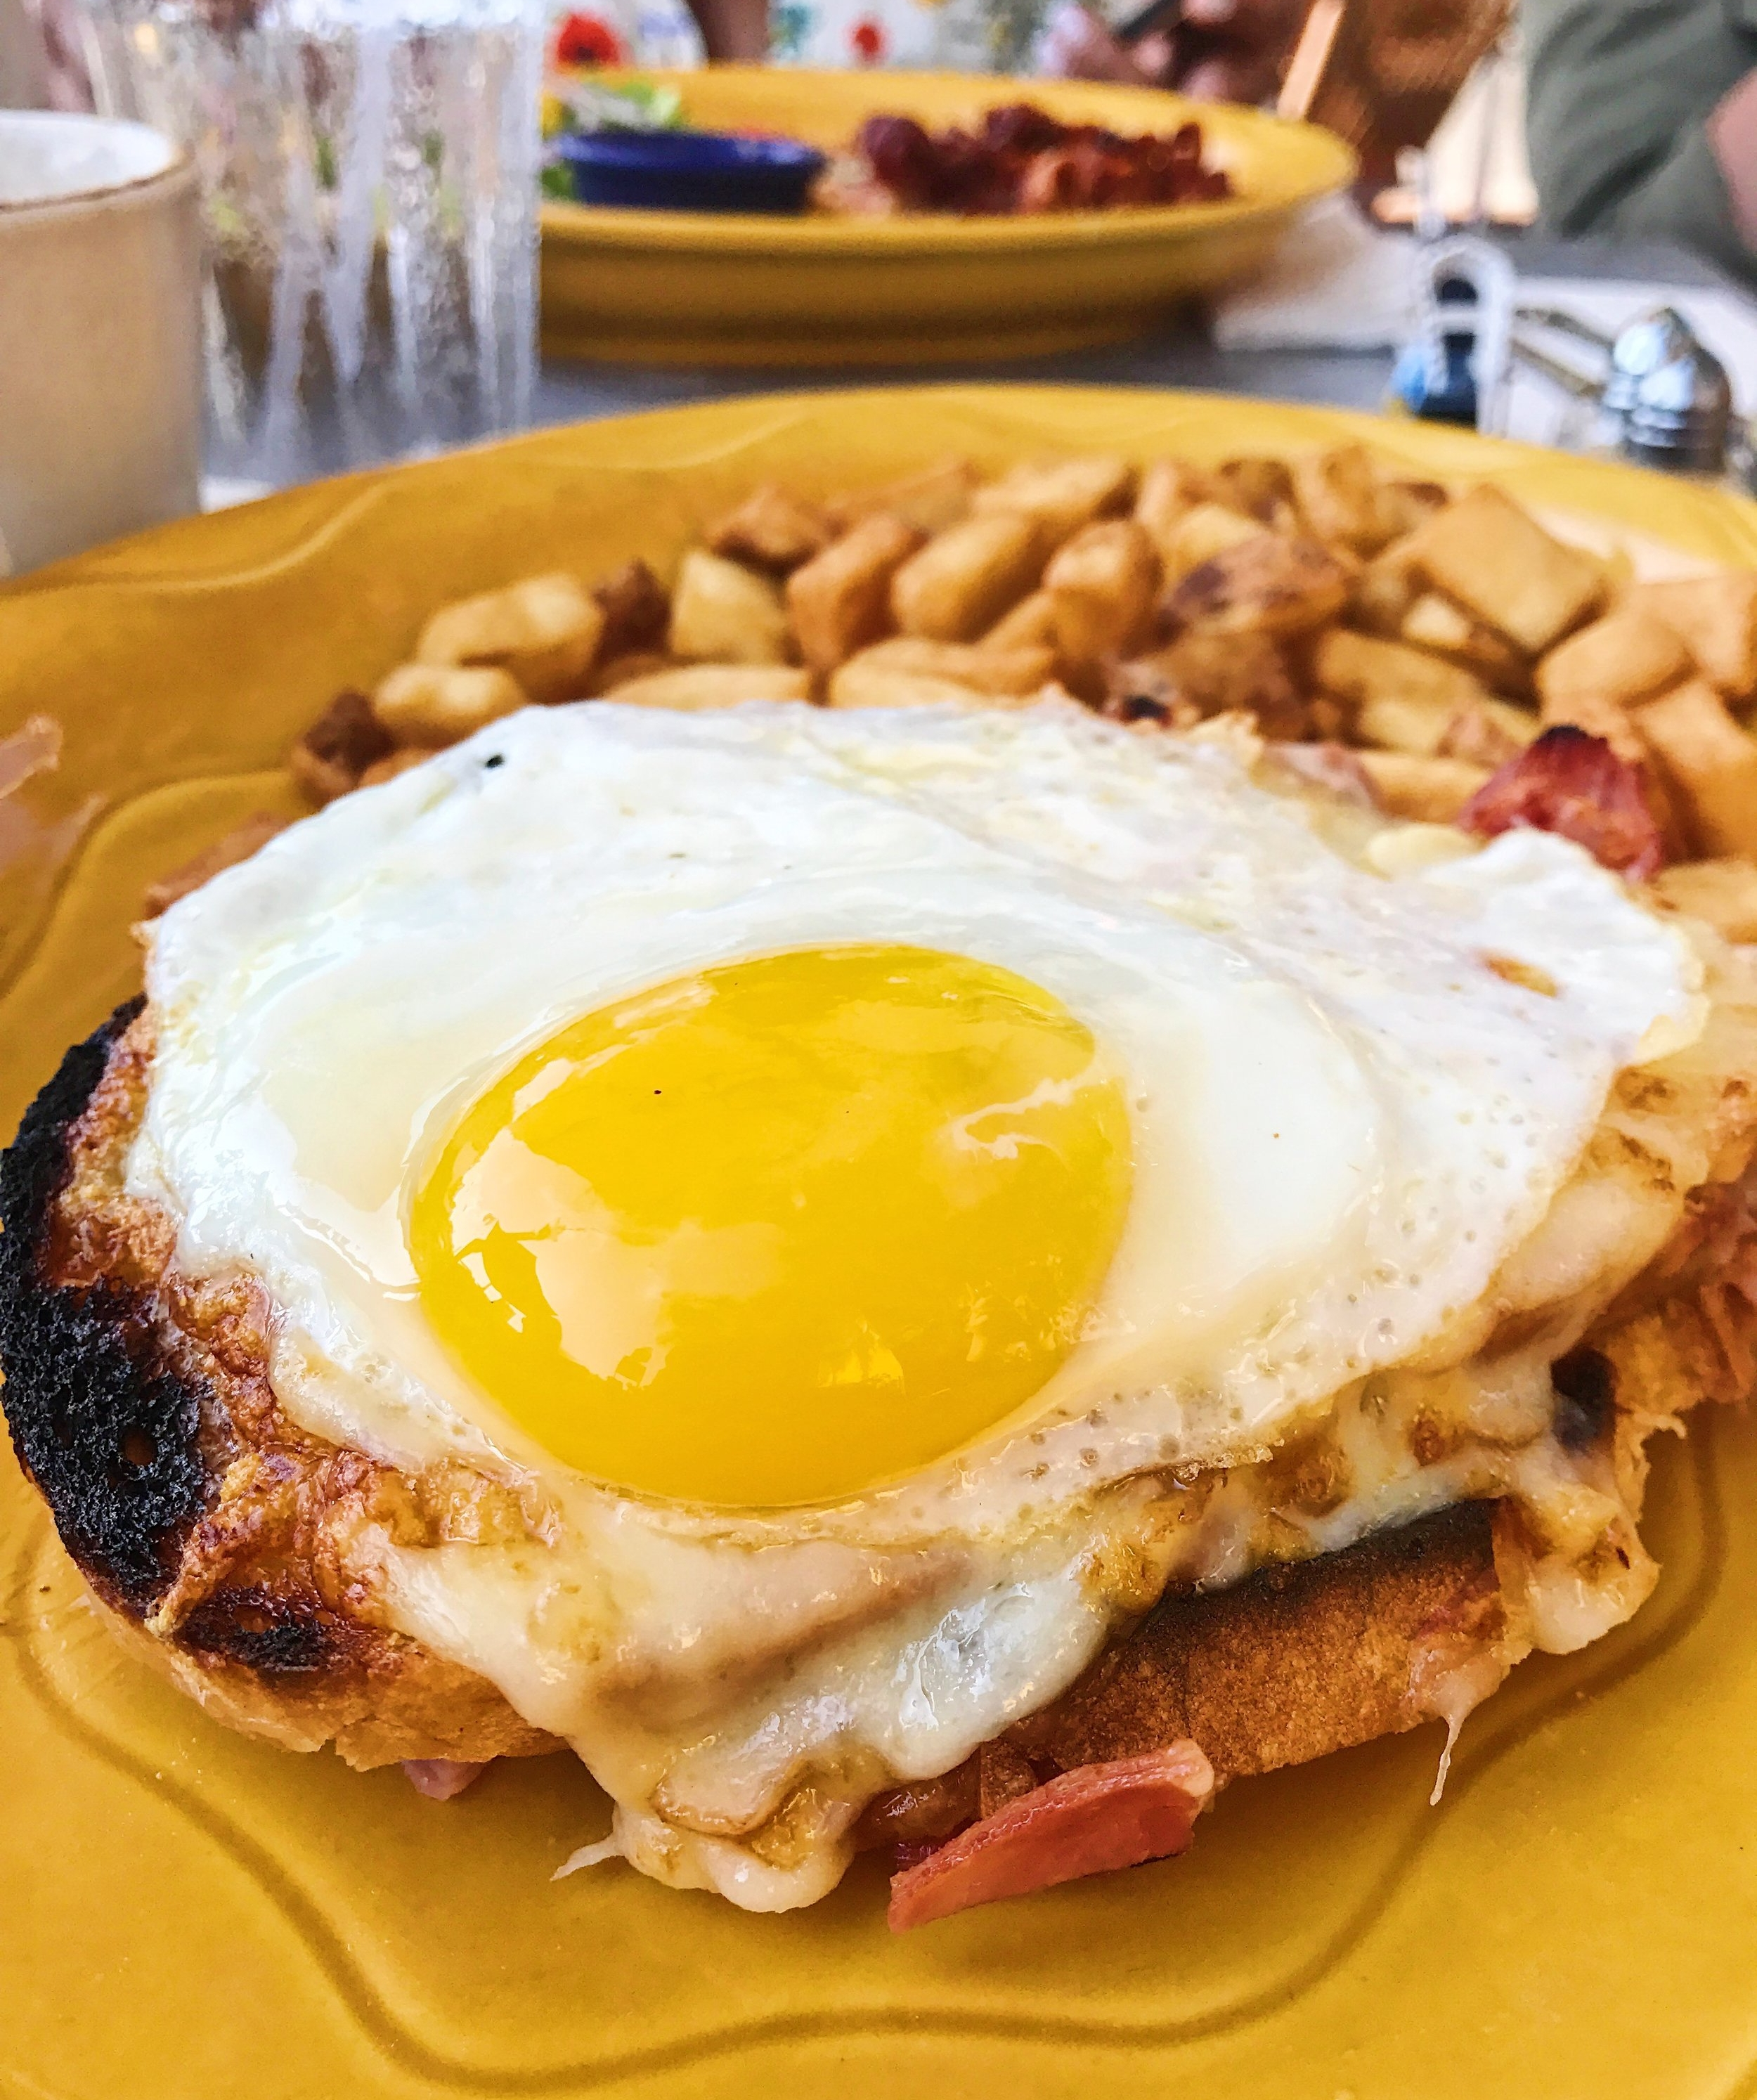 Croque Madame with toasted ham and cheese on bread with a delicious bechamel sauce and an an egg sunny-side-up.